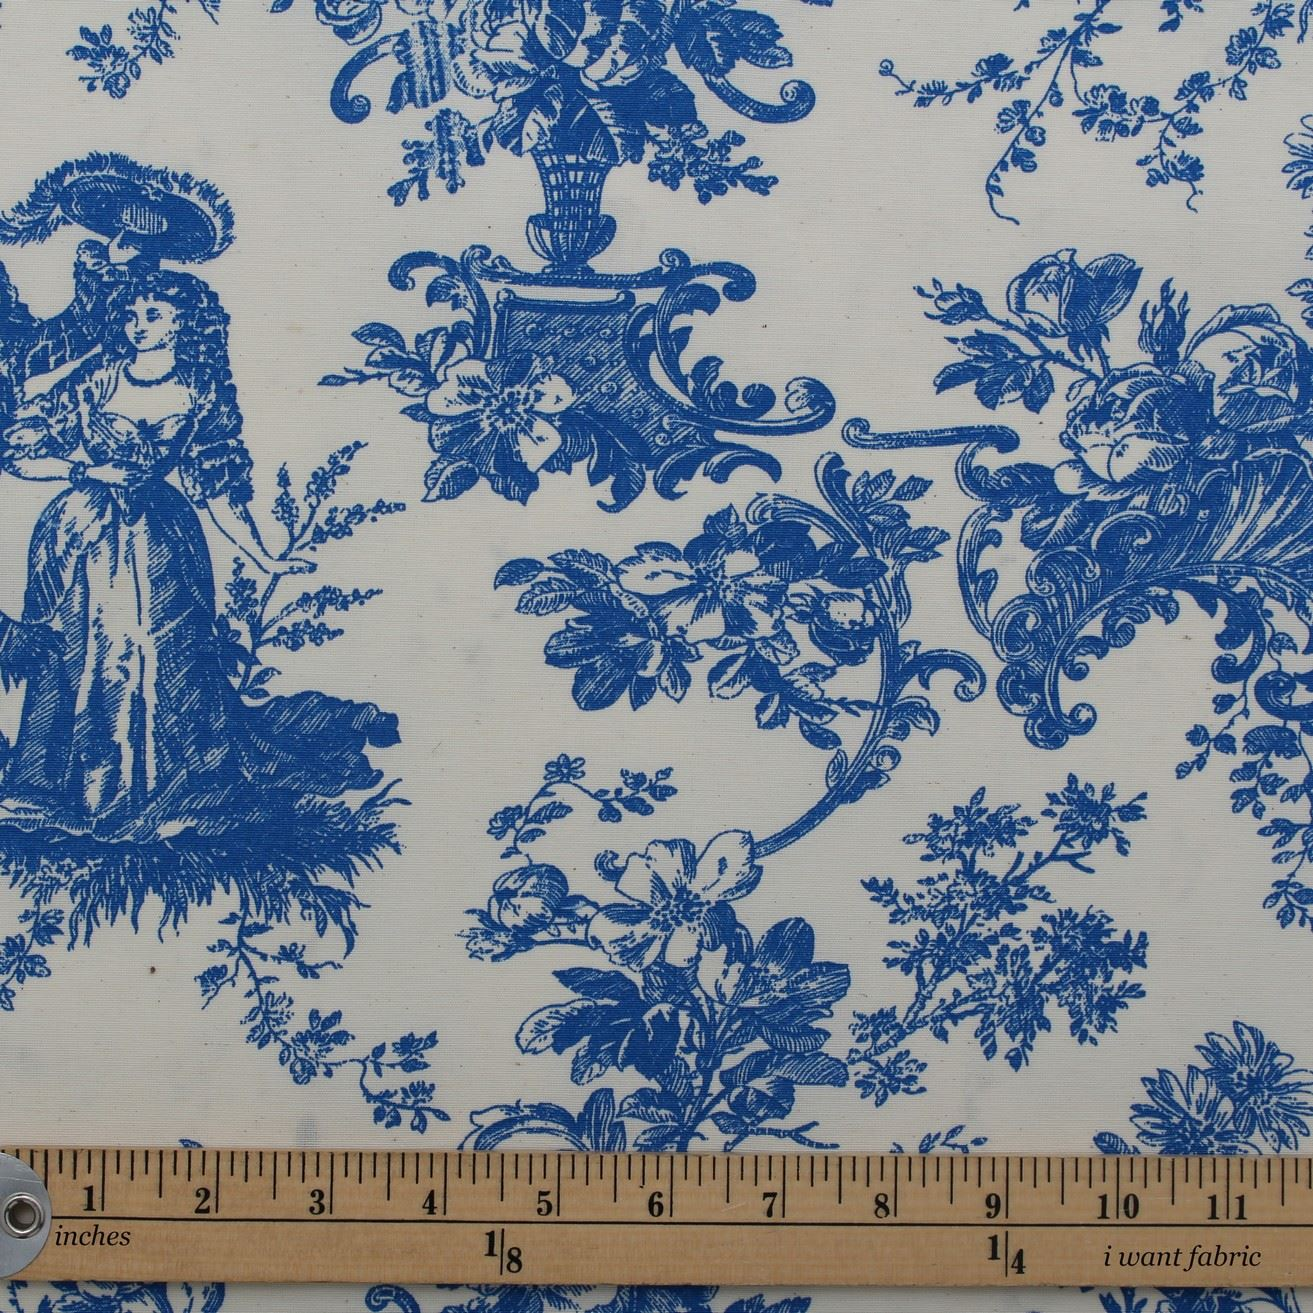 Toile de jouy french scene print cotton satin muslin for French toile fabric